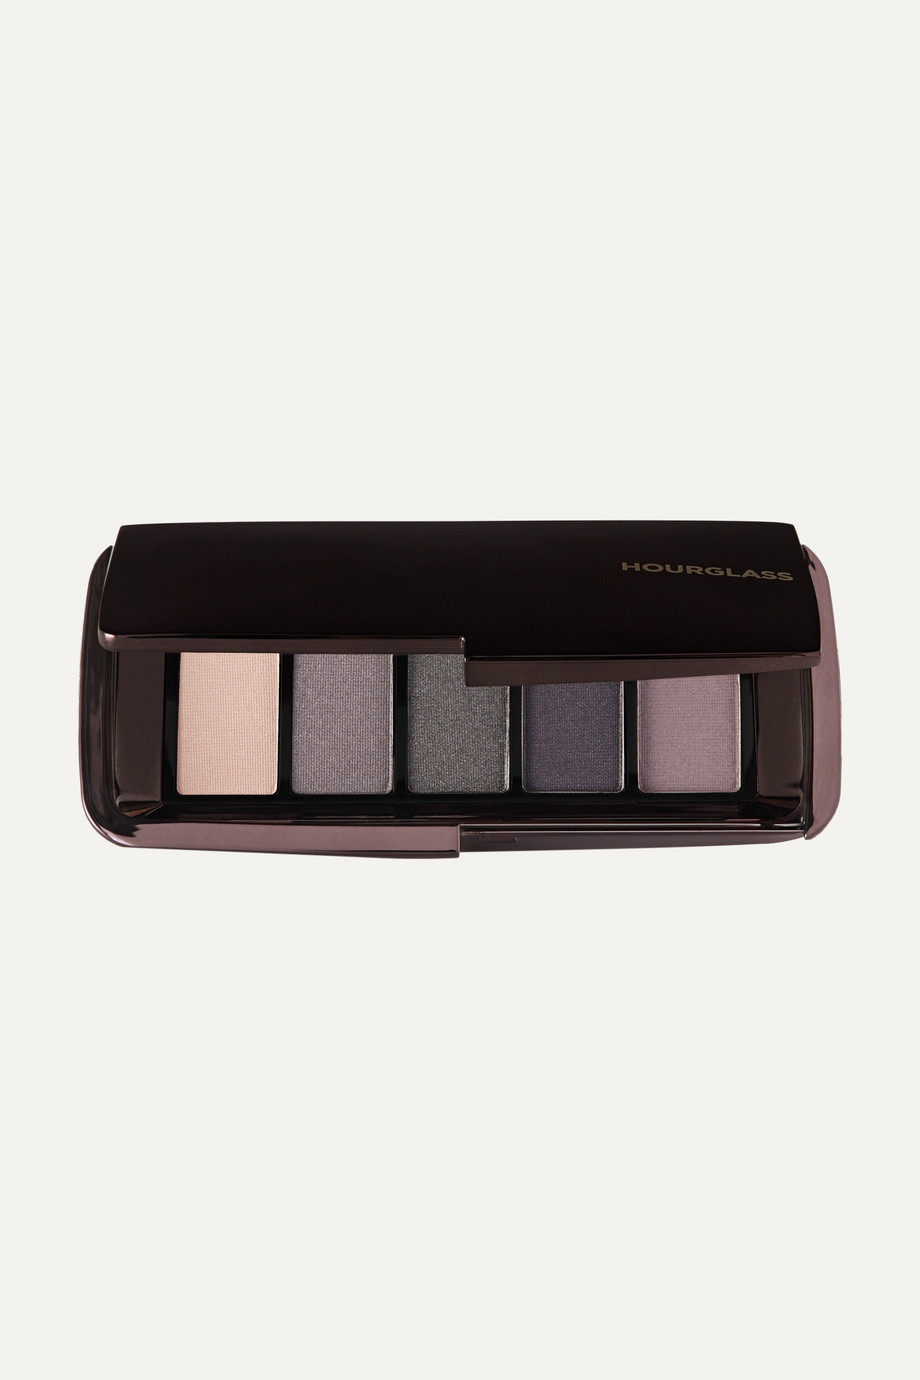 HOURGLASS Graphik Eyeshadow Palette - Expose